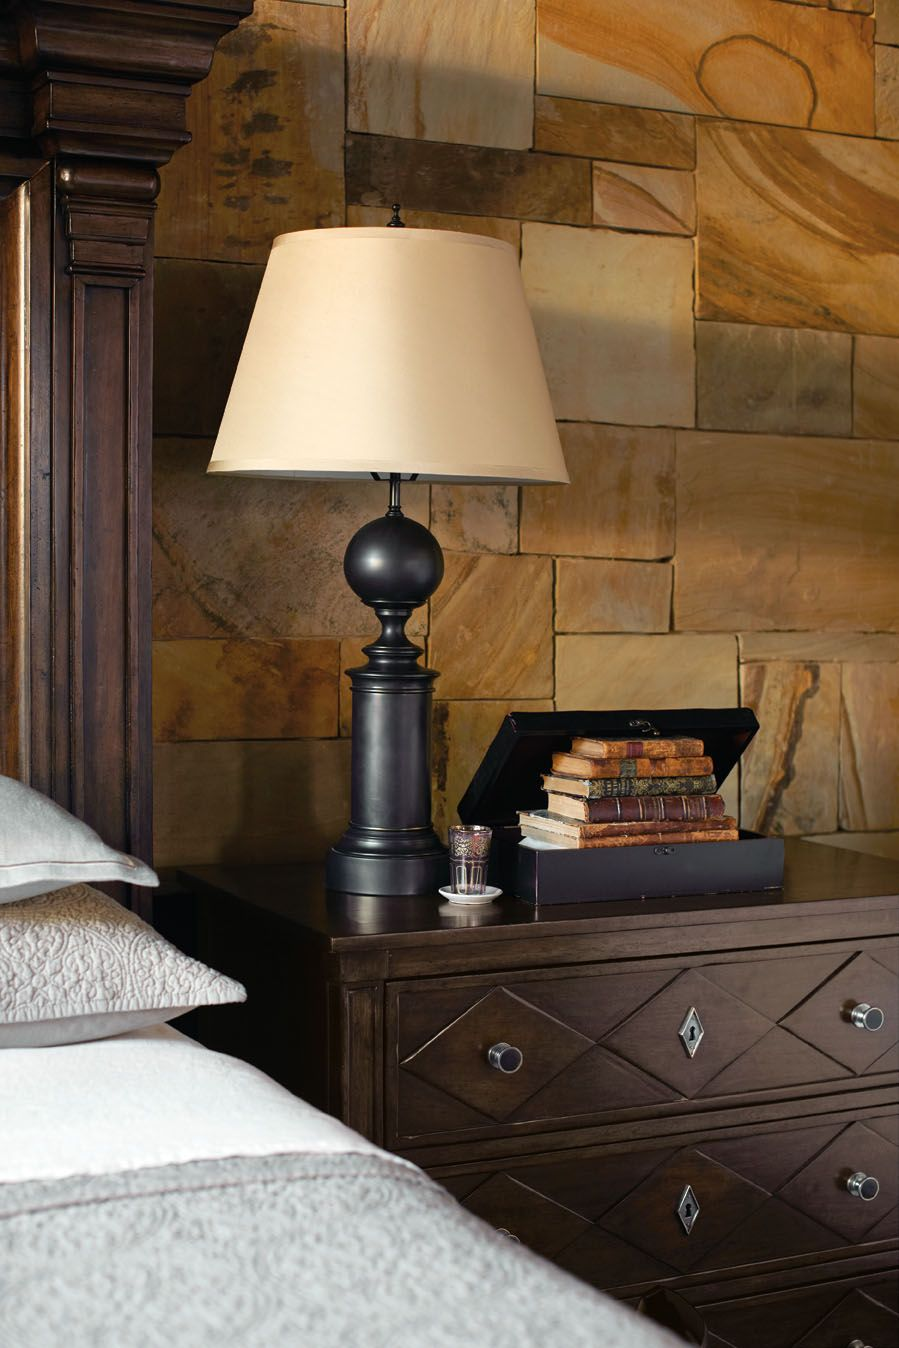 Bedroom Furniture at Colorado Style Home Furnishings - Denver ...